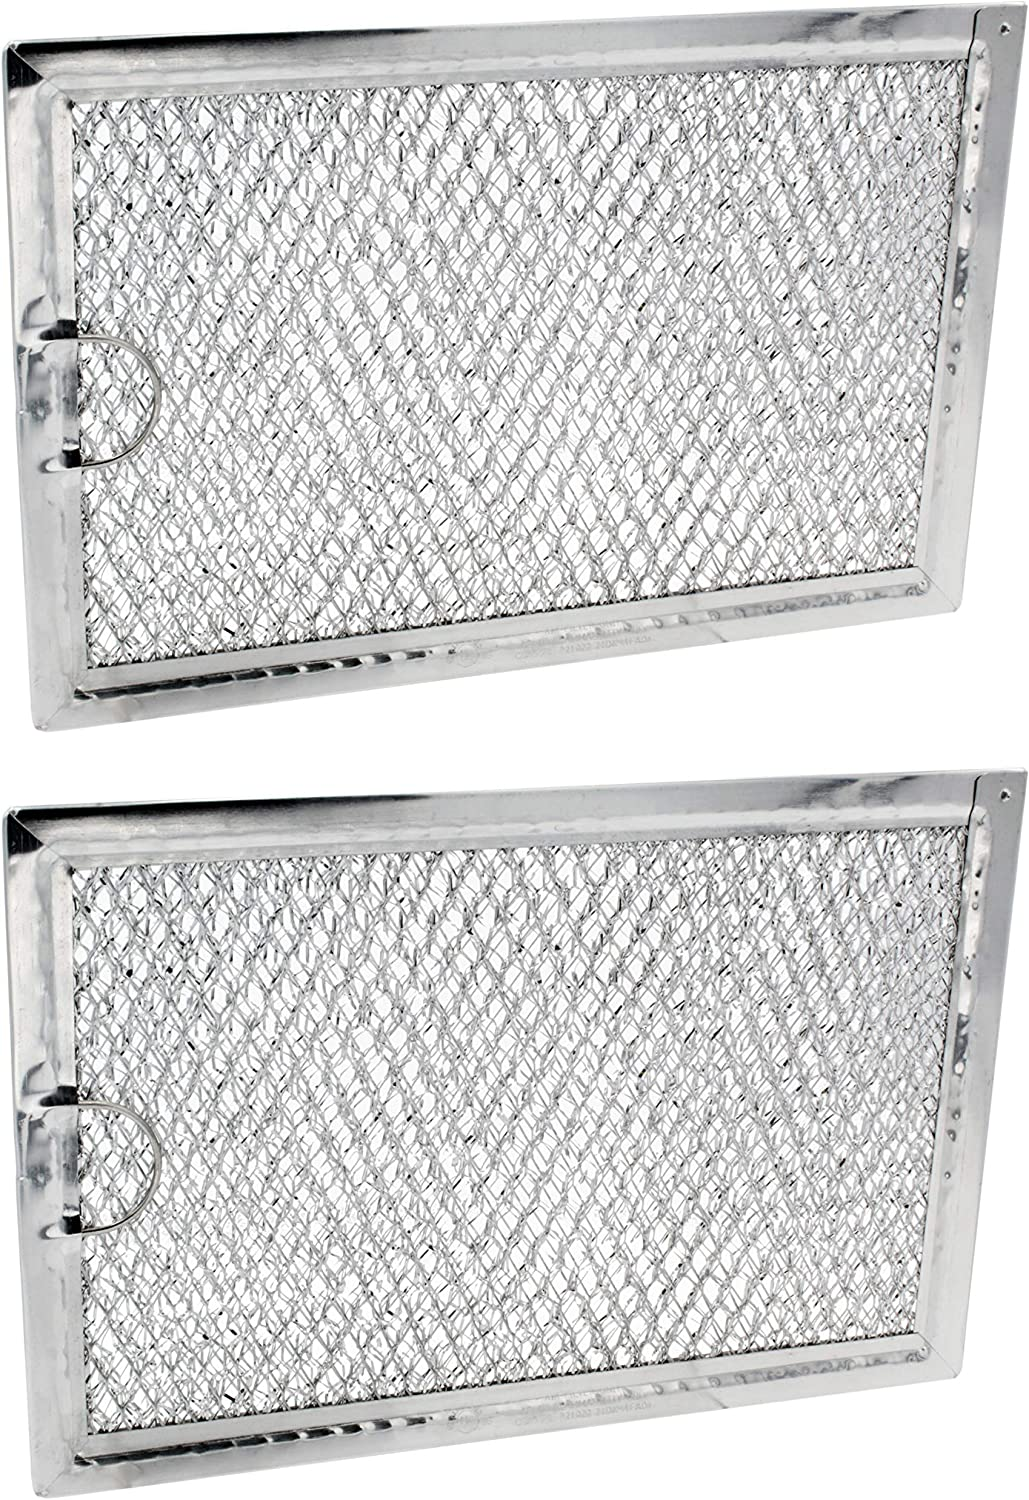 Supplying Demand 5304464105 Microwave Grease Filter Compatible with Frigidaire Fits 1381132, PS1993472 (2 Pack)